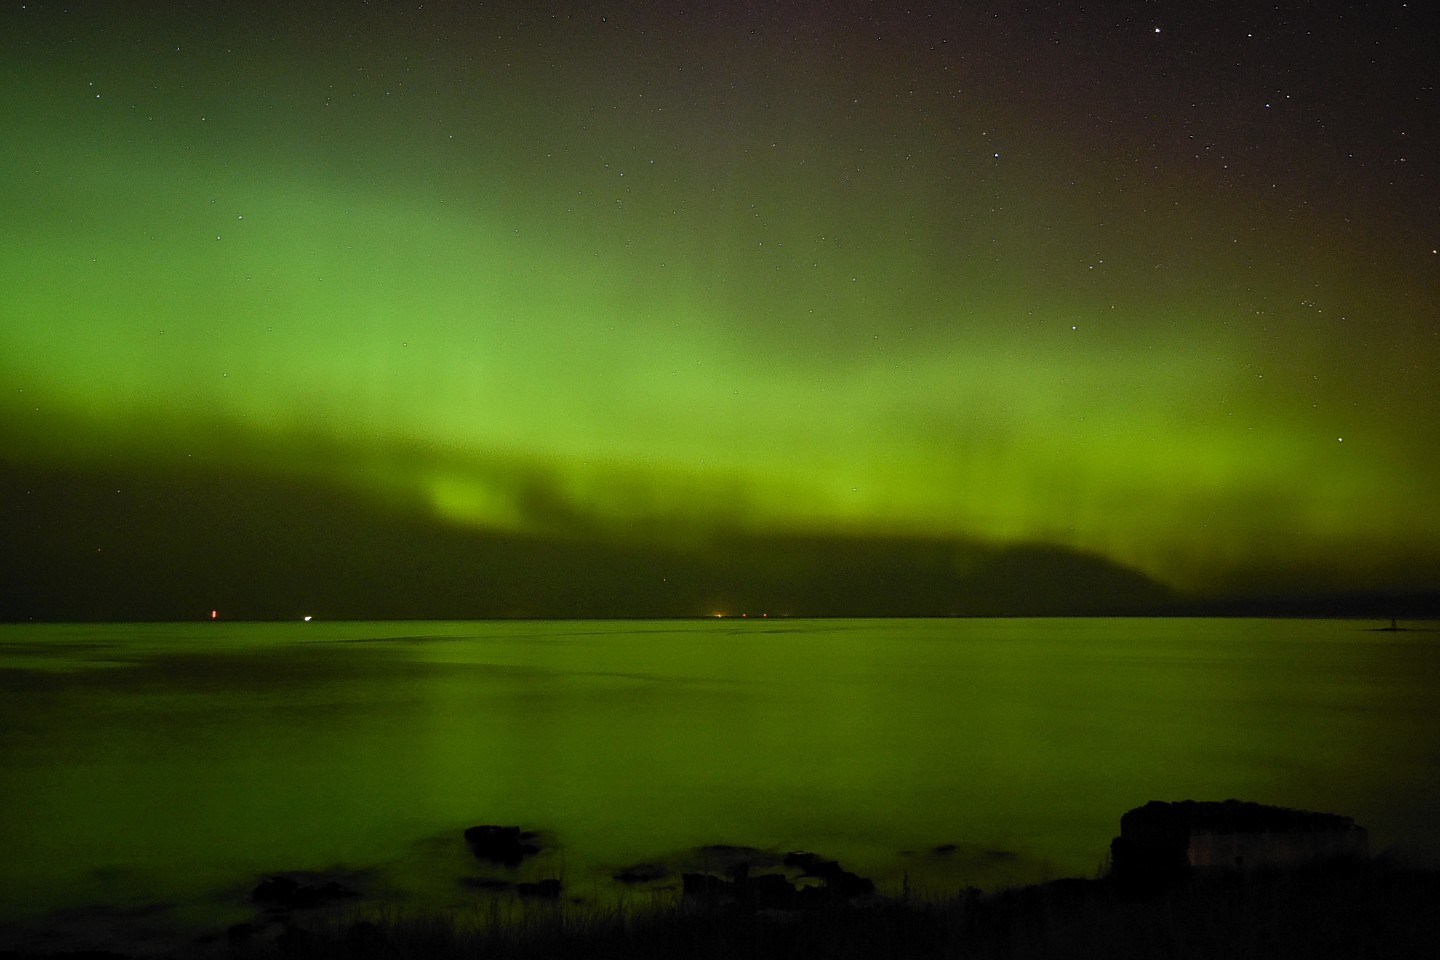 The Aurora Borealis, also known as the Northern Lights, are seen lighting up the sea by Lossiemouth